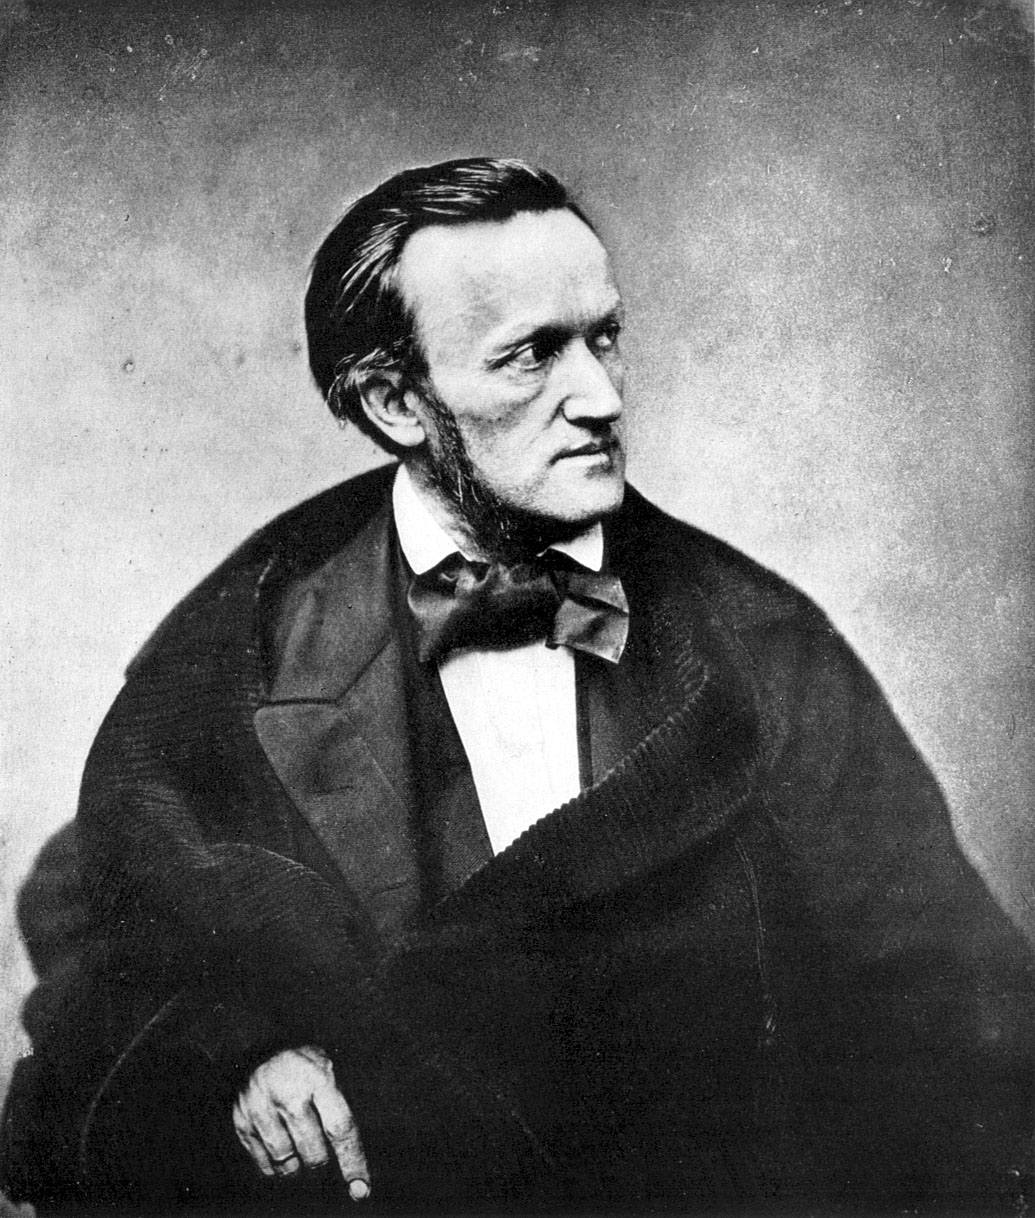 richard wagner essay Richard wagner's ring is an opera that circles around the themes of the earthly love for power, of gaining and loosing these themes, though present in many mythology-based stories such as.